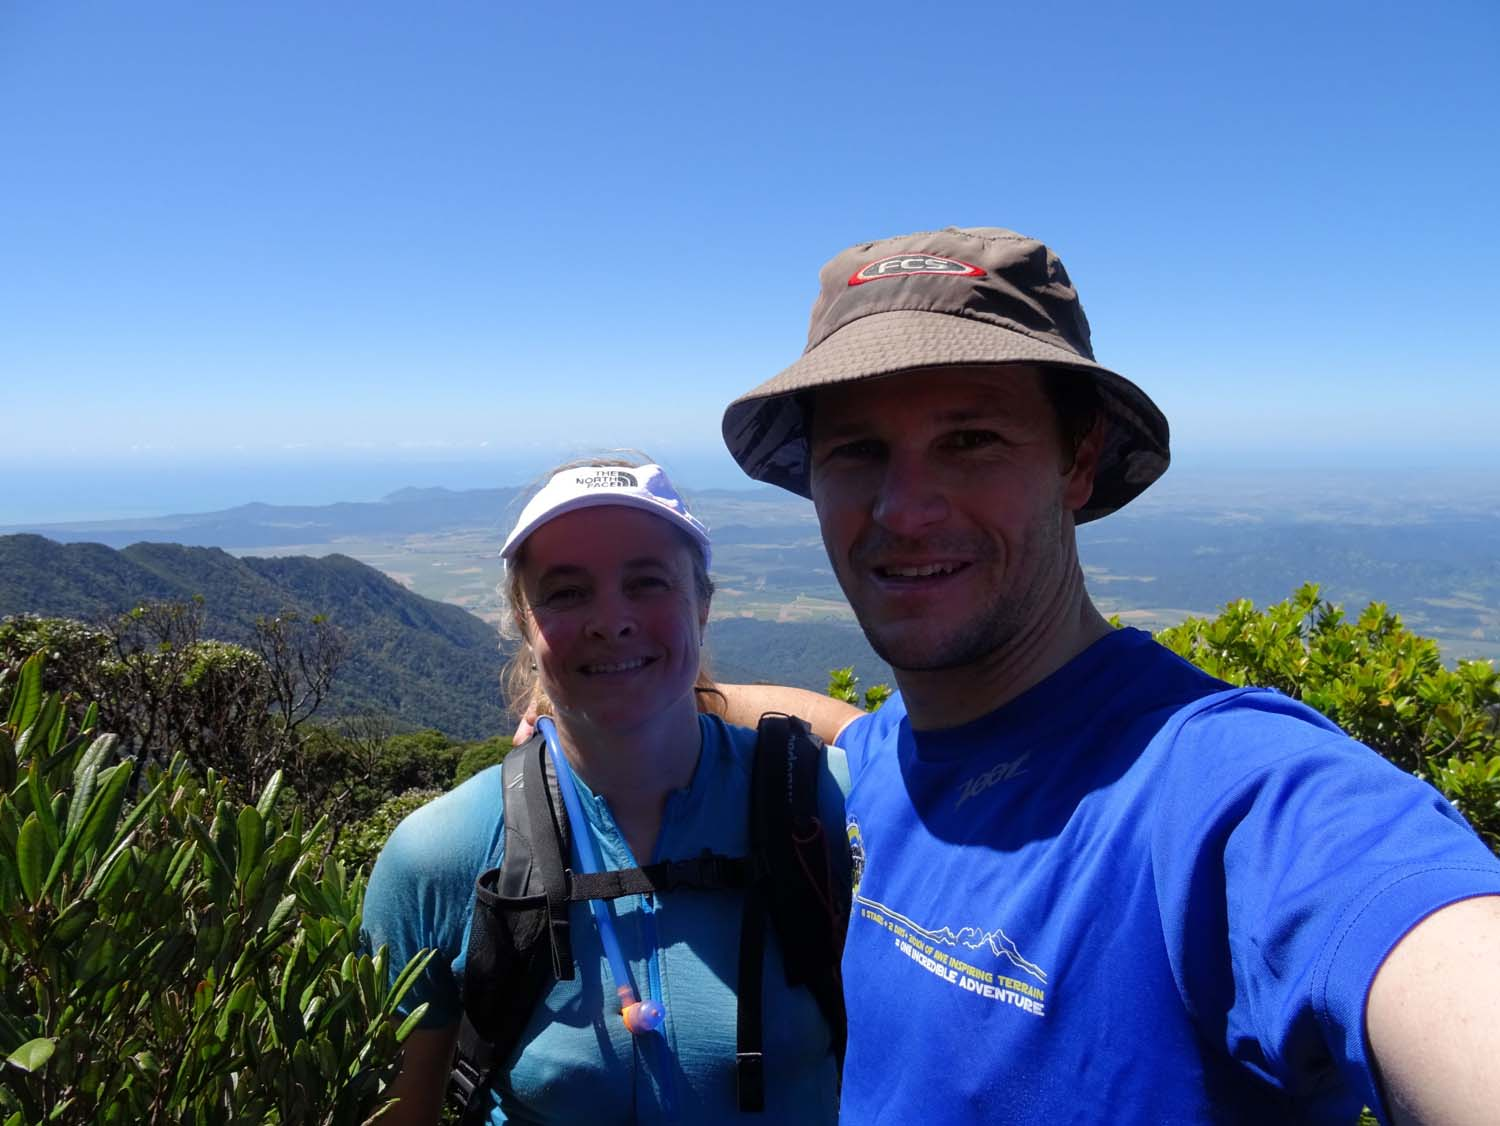 a quick hike to the top of Queensland's tallest mountain - Bartle Frere at 1622m